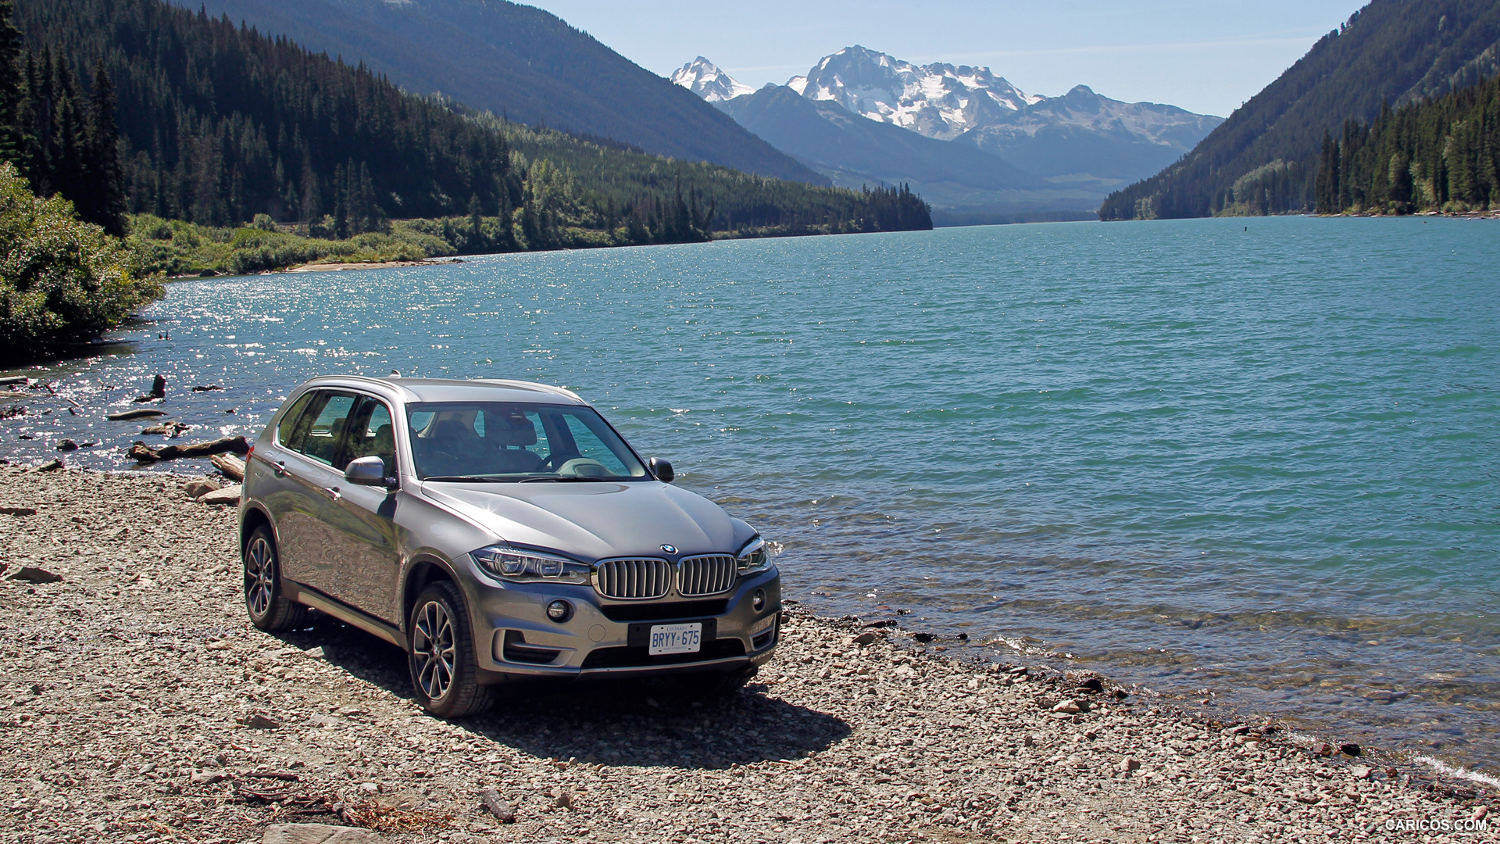 Comparison Bmw X5 Xdrive50i 2015 Vs Zx Landmark 2015 Suv Drive